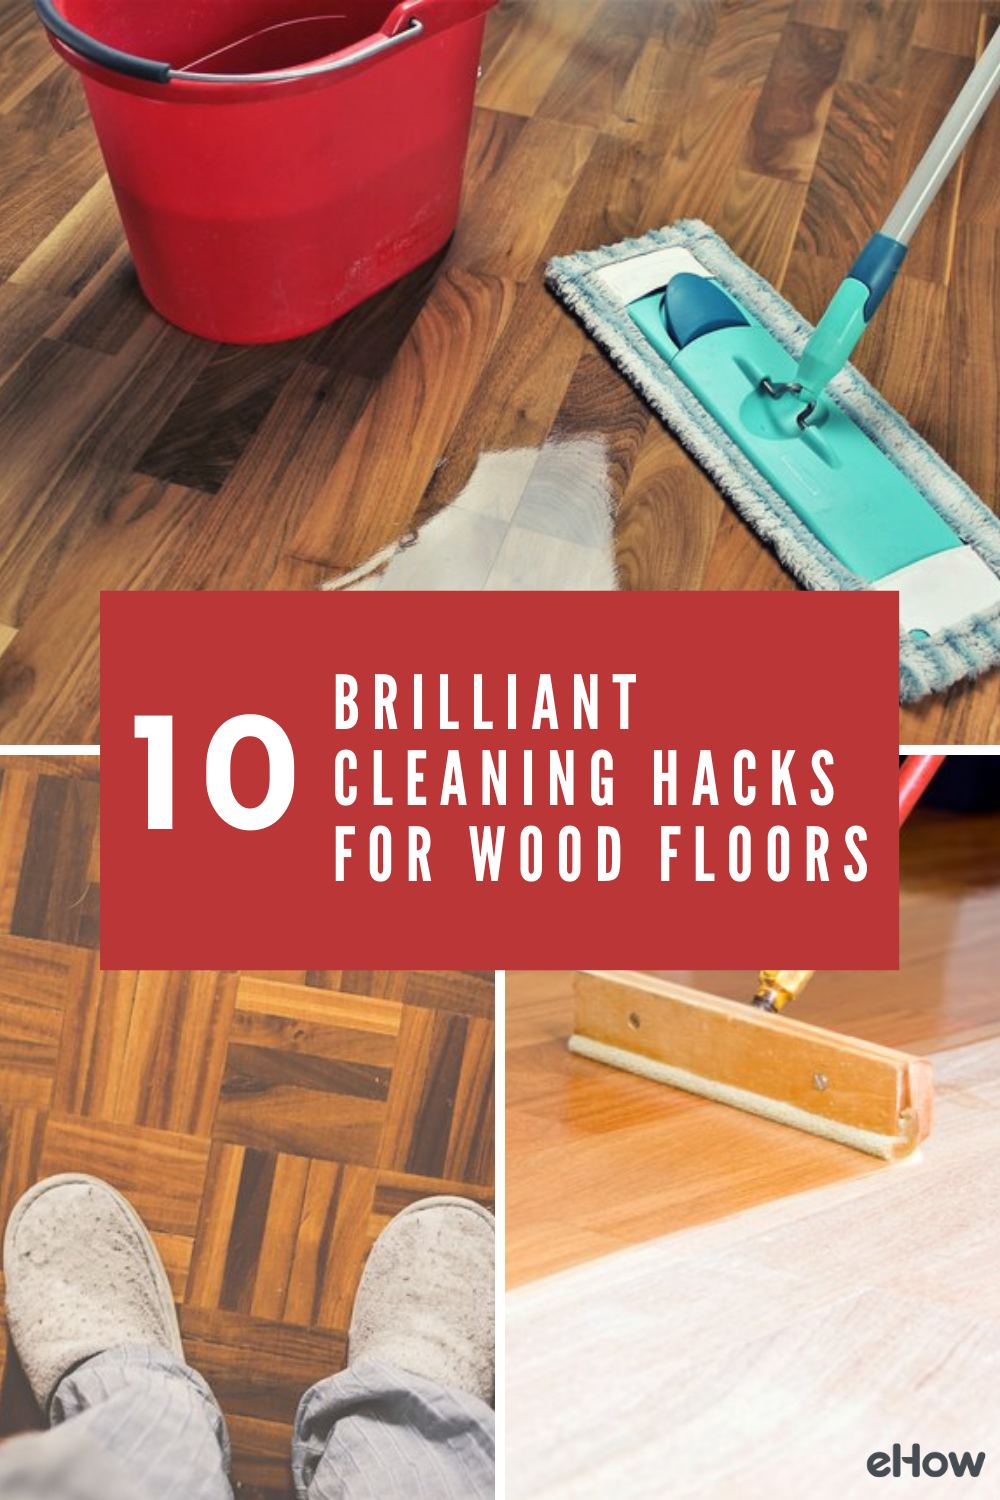 10 Brilliant Cleaning Hacks For Wood Floors Ehow Com In 2020 Cleaning Hacks Cleaning Wooden Floors Cleaning